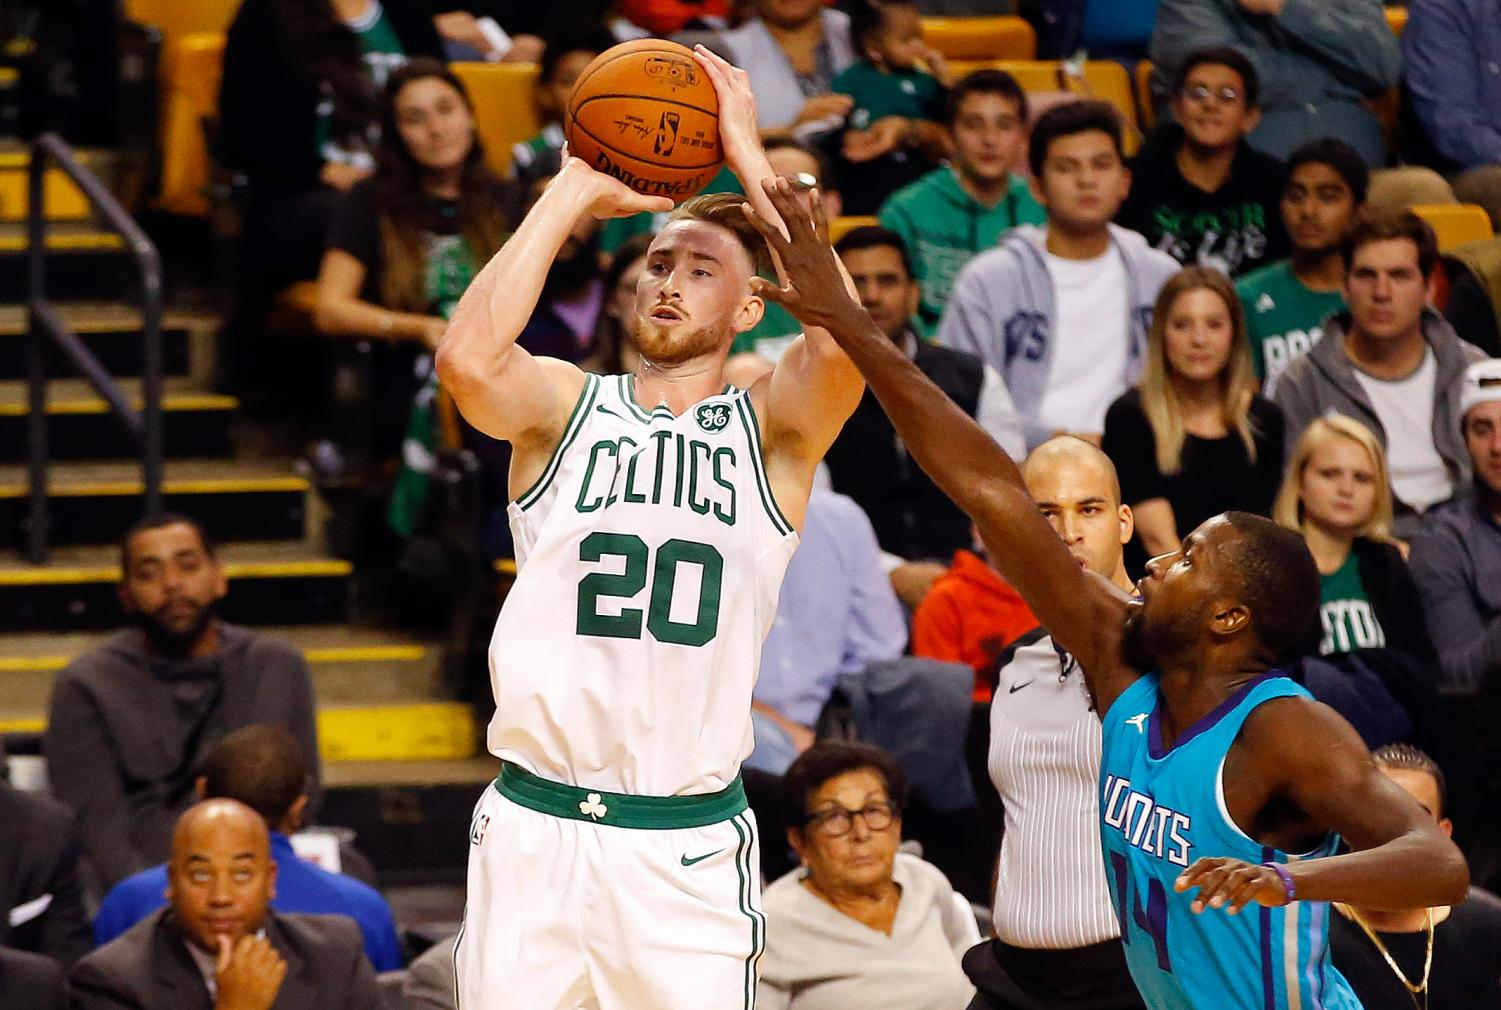 Boston Celtics player gordon Hayward takes a shot in a game against the Charlotte Hornets. on Oct. 2. Hayward injured his leg on Oct. 17, inhibiting him to play for the remainder of the season.